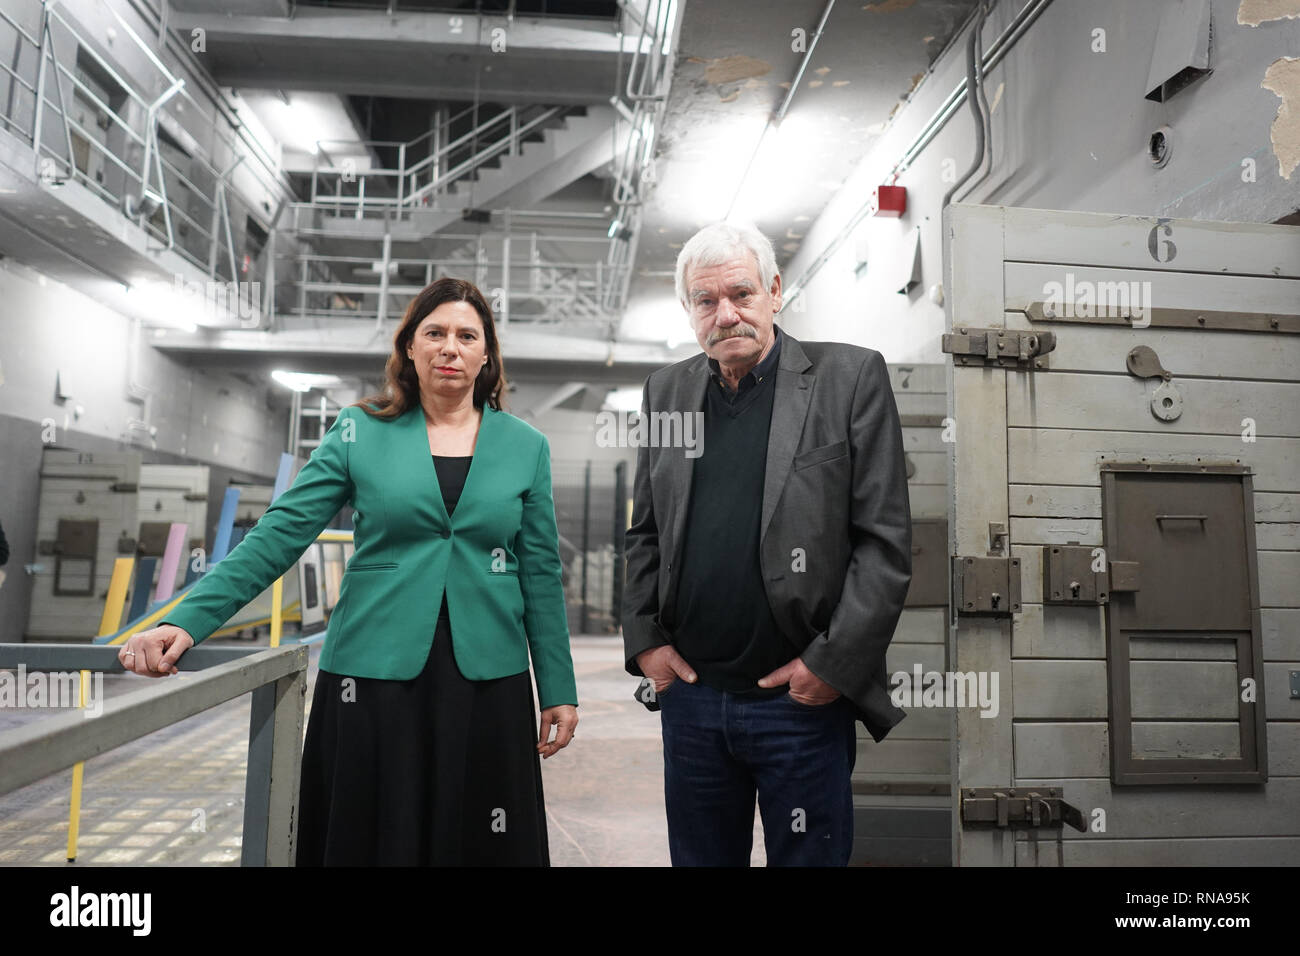 Berlin, Germany. 18th Feb, 2019. Sandra Scheeres (SPD), Berlin's senator for education, and the 70-year-old contemporary witness Michael Brack, open an extracurricular place of learning in the former GDR police prison Keibelstraße in Berlin. According to the Senator, young people there will be able to deal with state arbitrariness and repression in the GDR in the future. Guided tours of the building are also planned for interested visitors. The prison stood empty for years, the use had been struggled for a long time. Credit: Jörg Carstensen/dpa/Alamy Live News - Stock Image